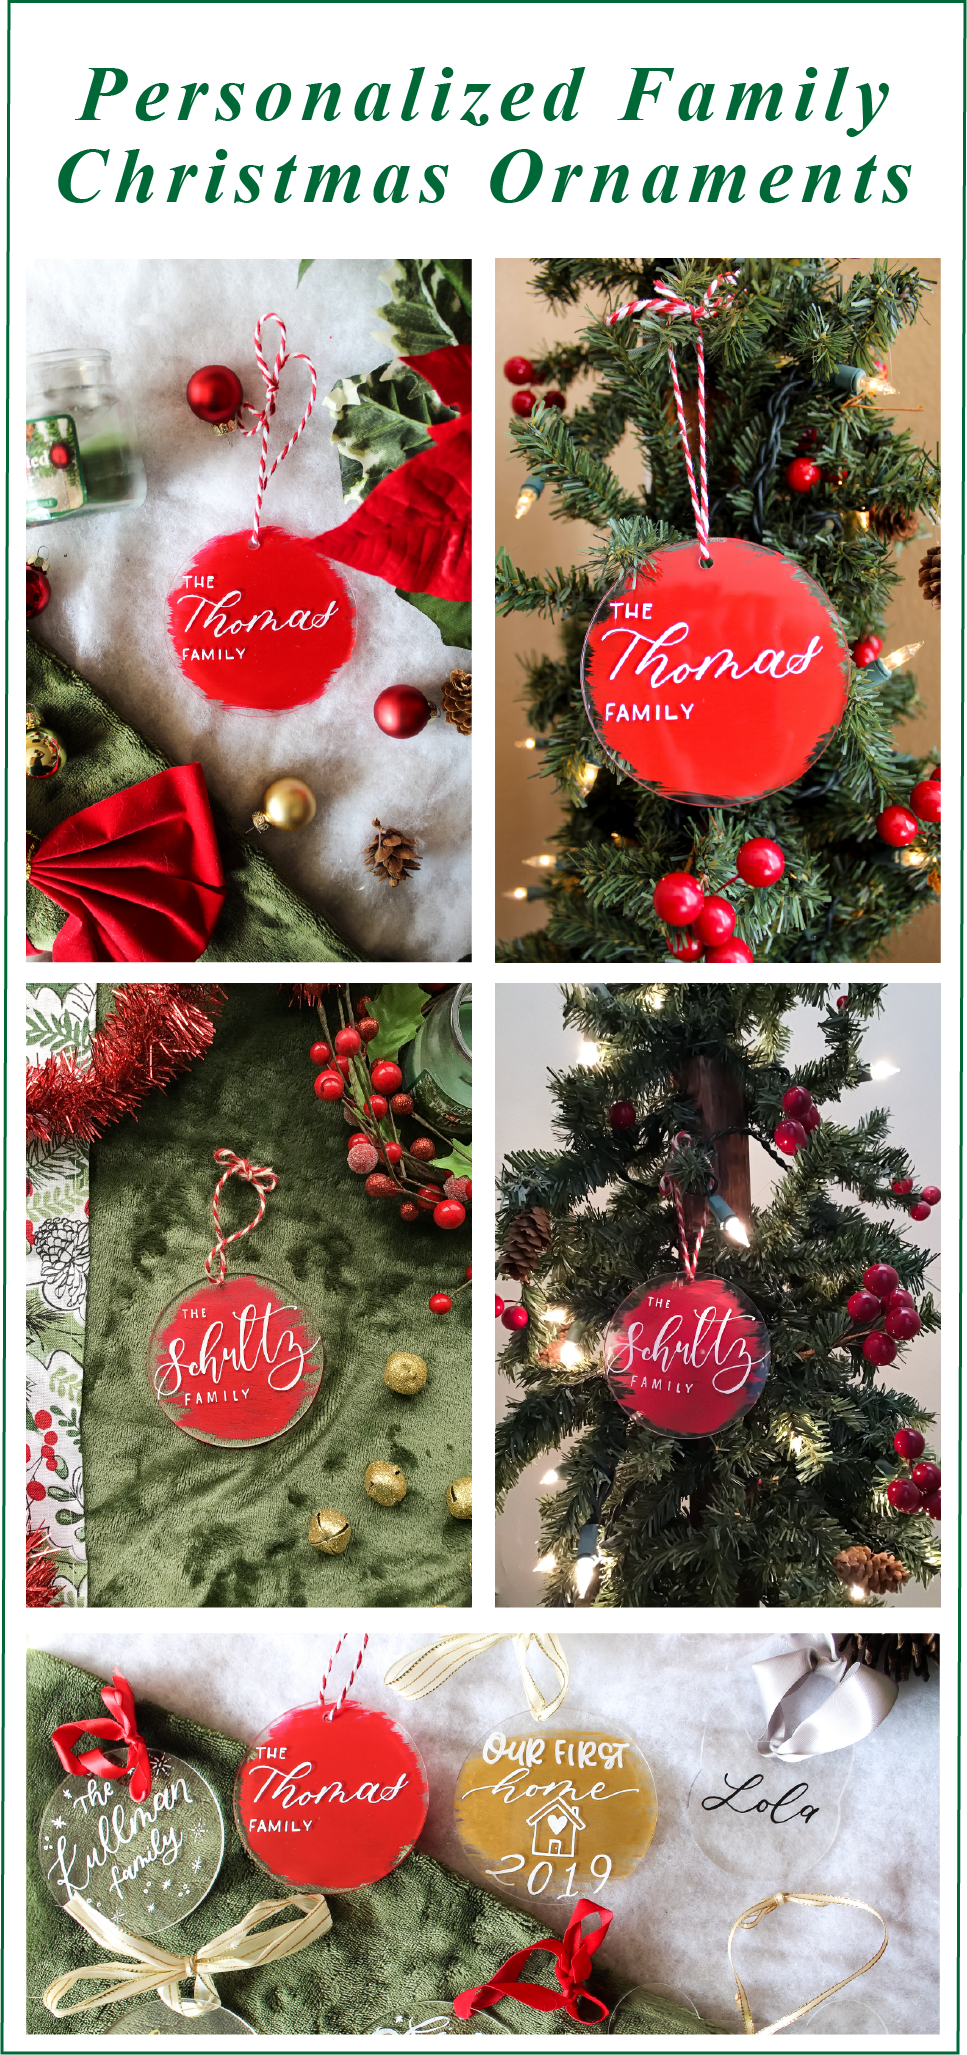 Wichita Calligraph Emilly Elle Designs Personalized Christmas Ornaments Family Personalized Family Ornaments Personalized Christmas Ornaments